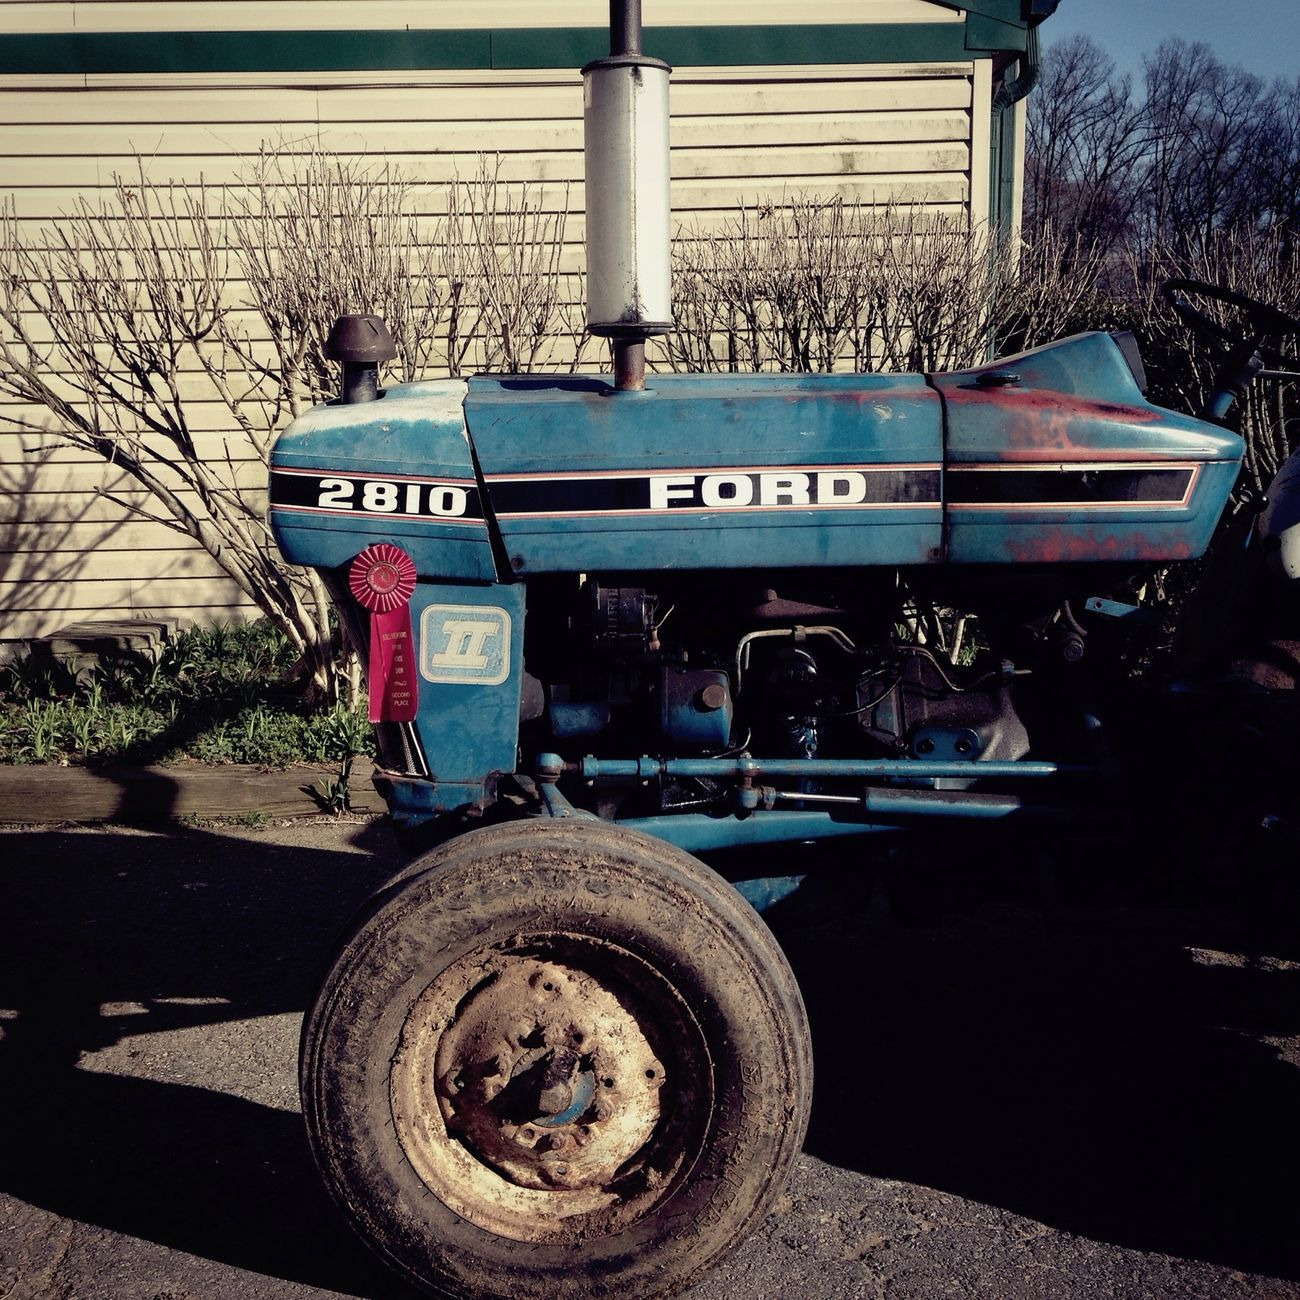 Urban 4 Filter in a non-urban setting At The Barn Tractor Red Ribbon Monday Mobilephotography